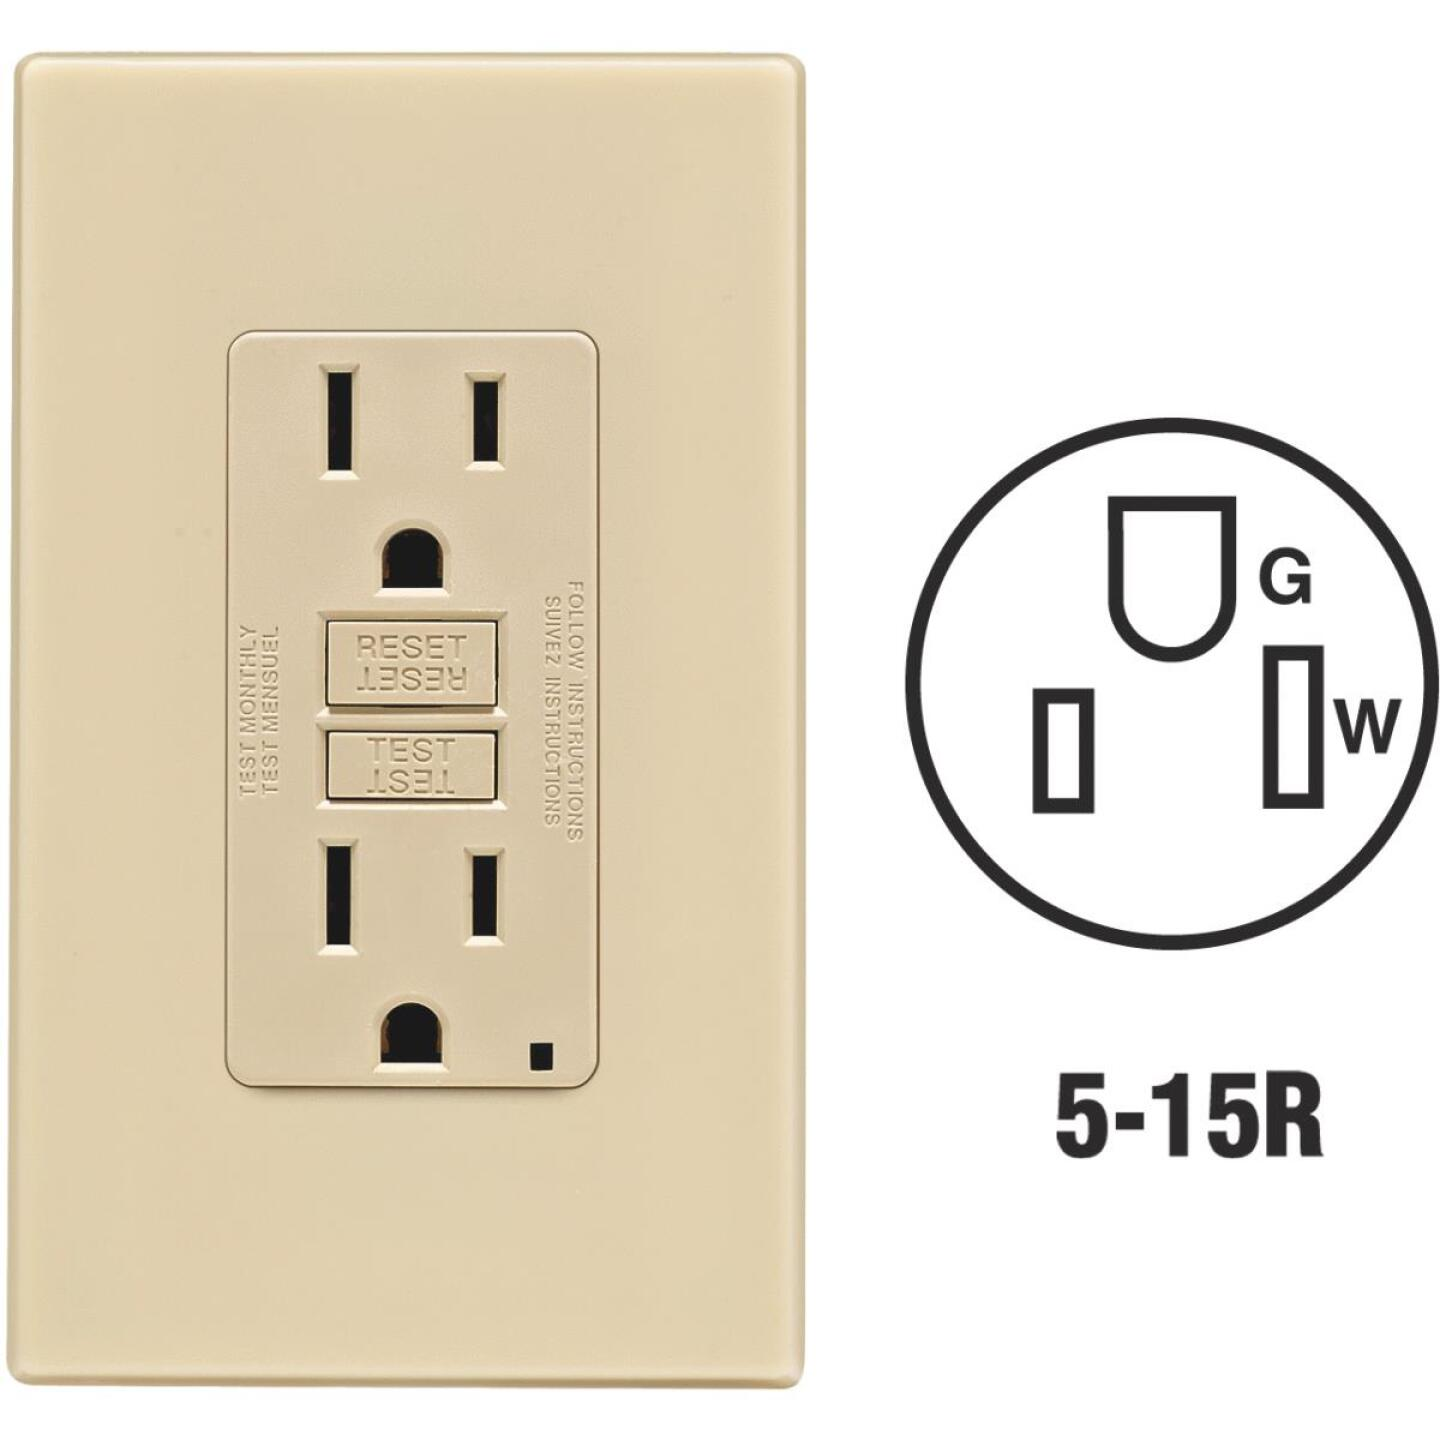 Leviton SmartlockPro Self-Test 15A Ivory Residential Grade 5-15R GFCI Outlet with Screwless Wall Plate Image 1